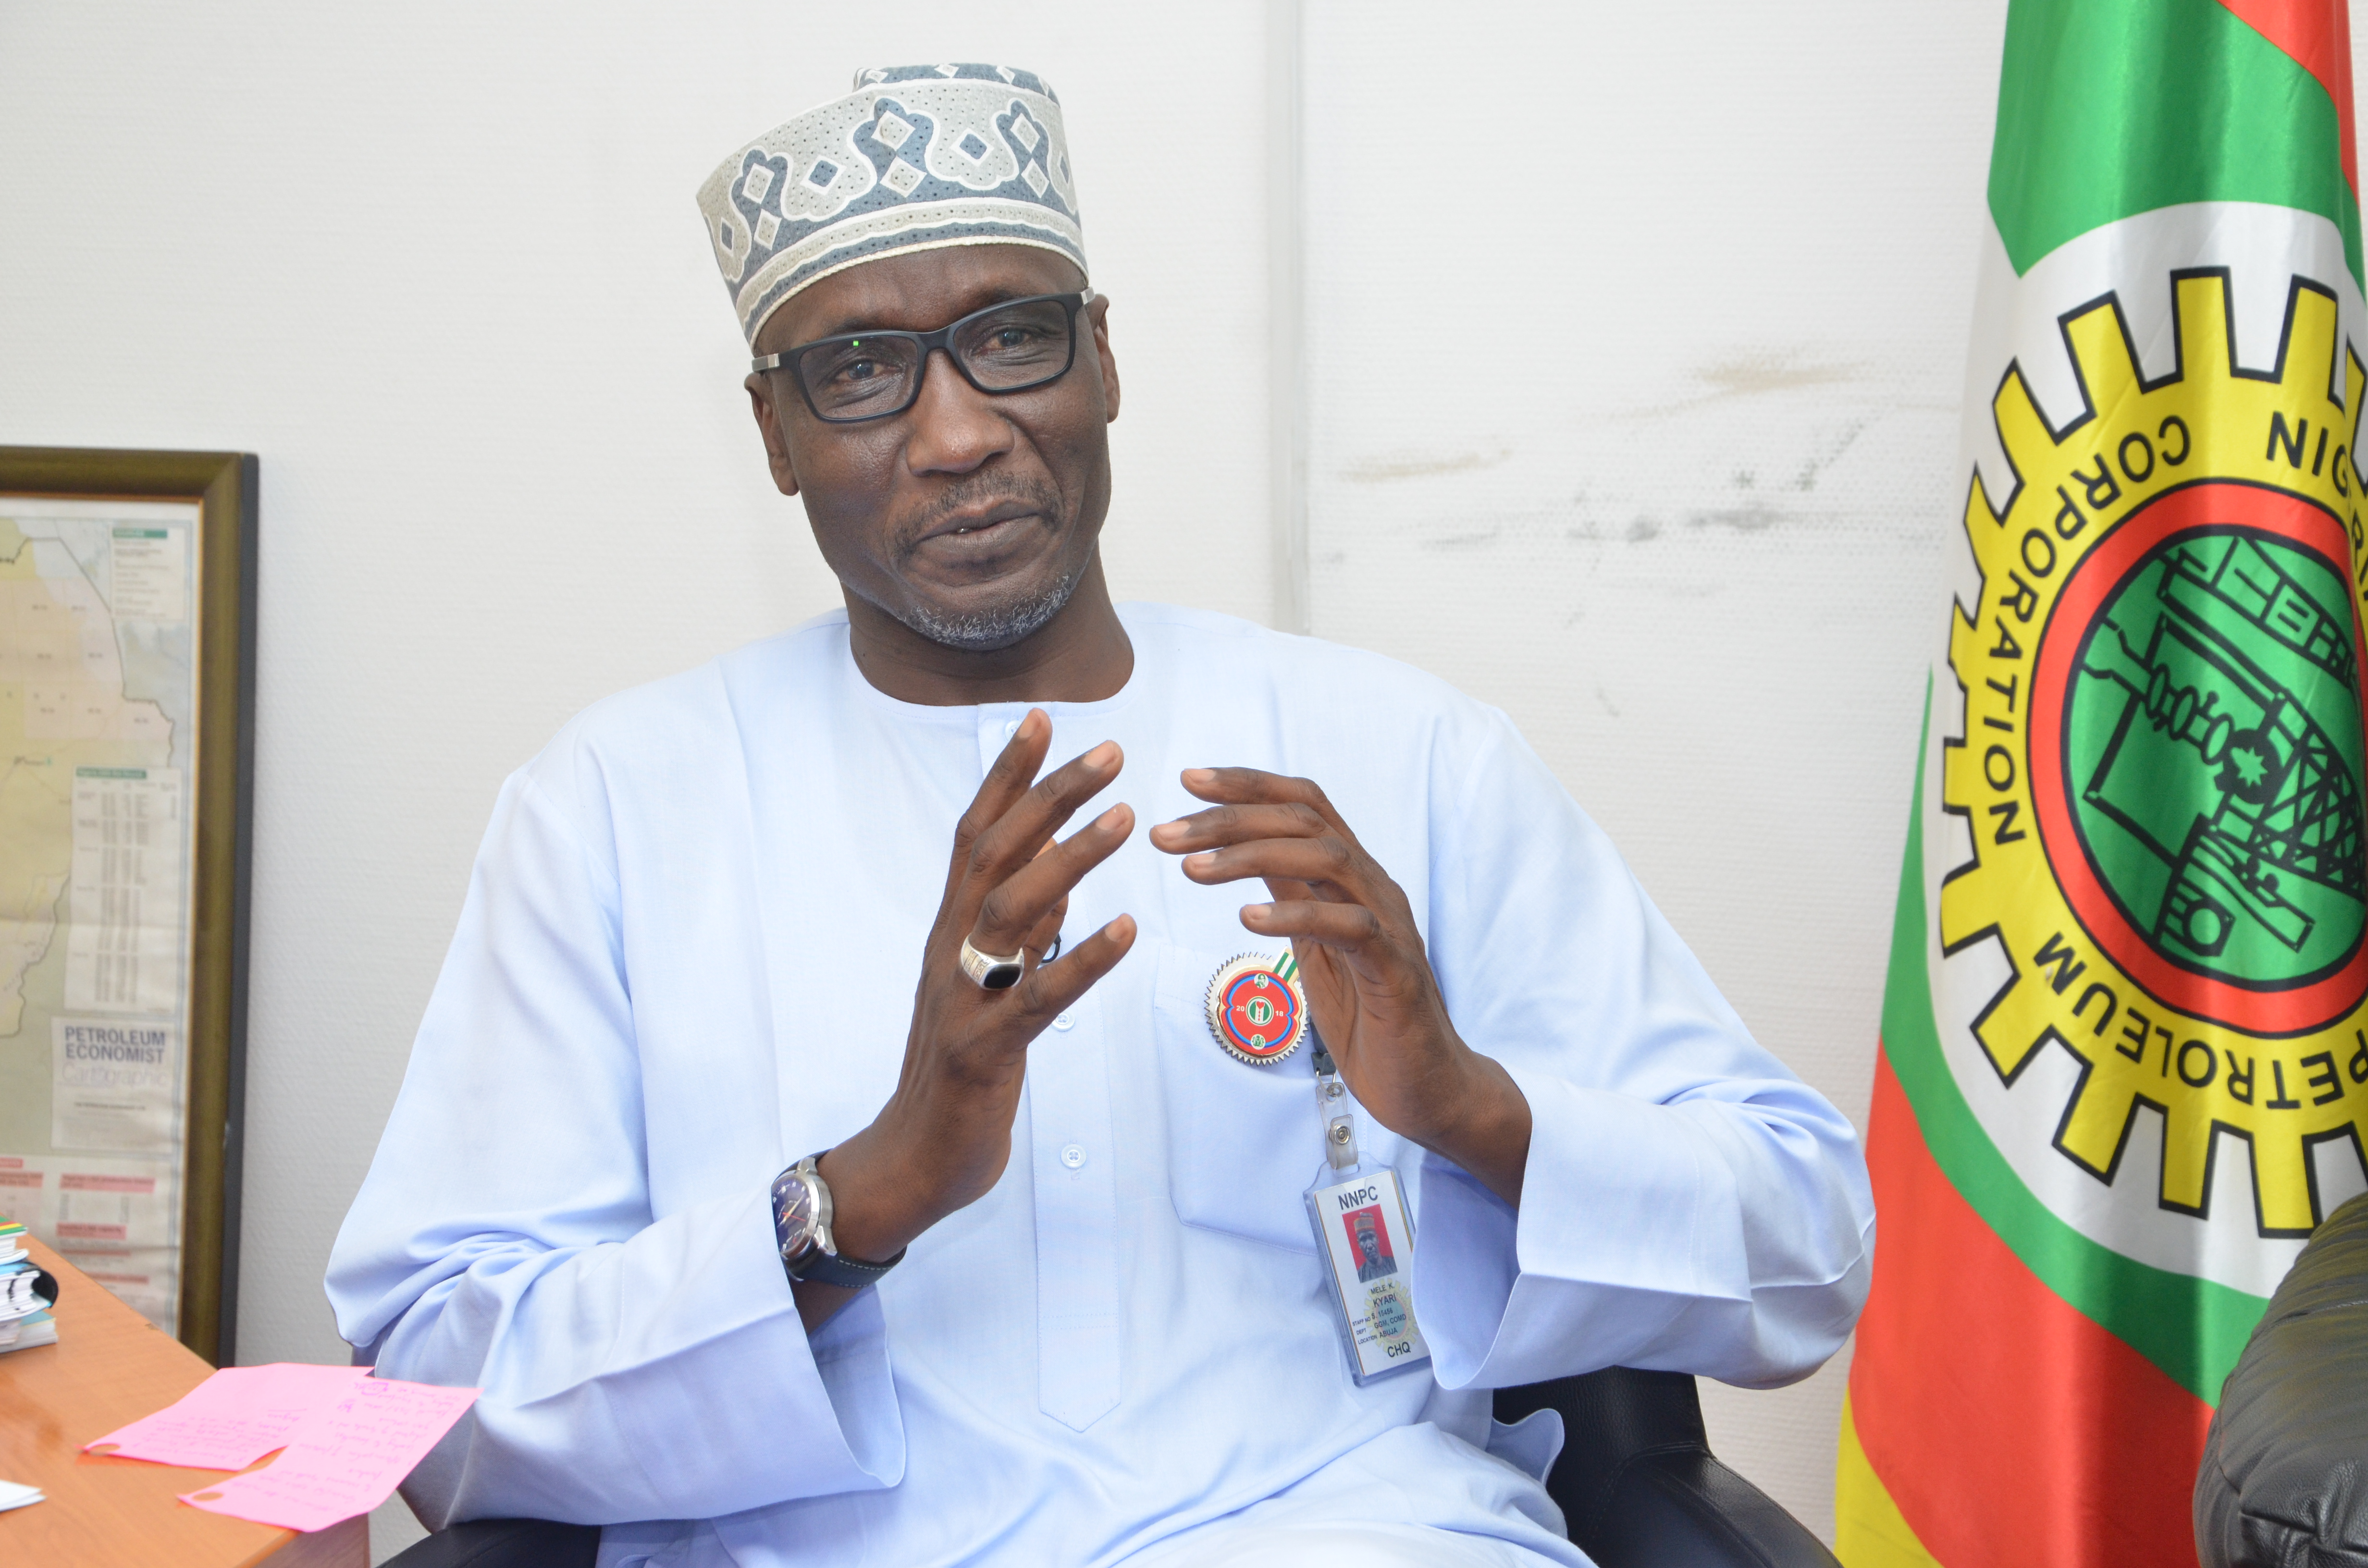 NNPC Says It Can Account for Every Barrel of Oil Sold in Nigeria